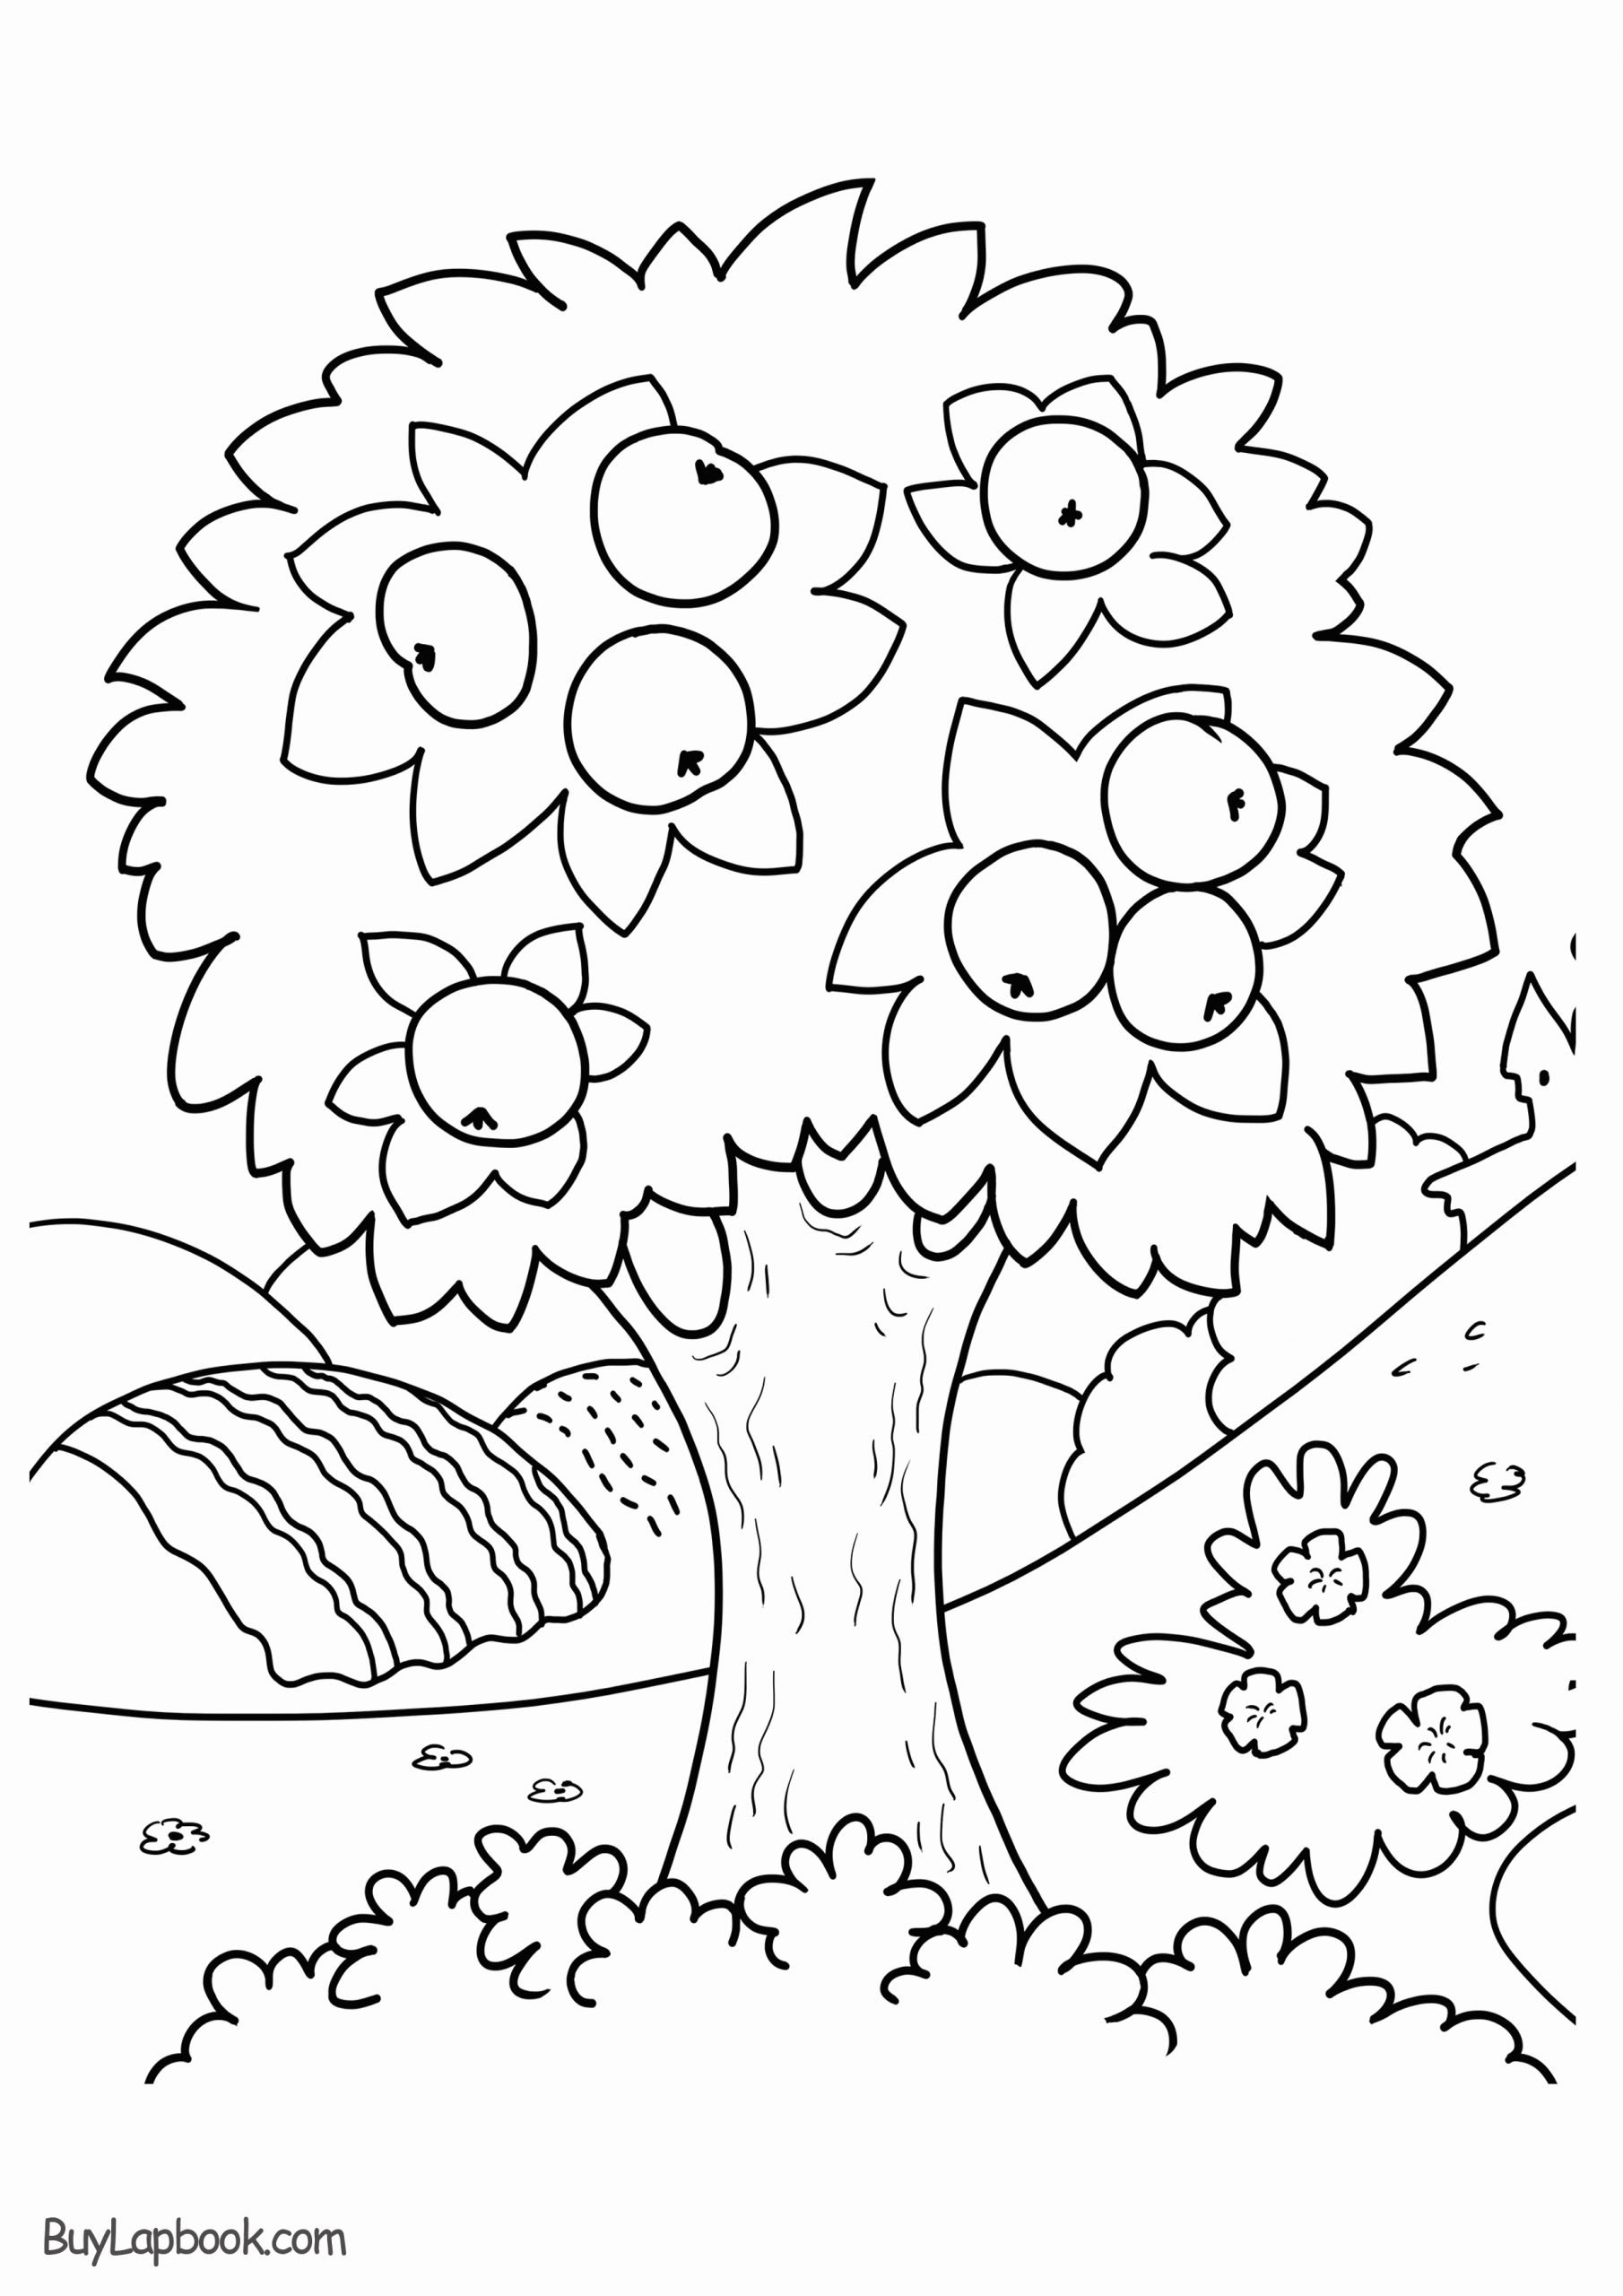 Tree Coloring Worksheets for Preschoolers top Apple Tree Coloring Page Free Printable – Buylapbook